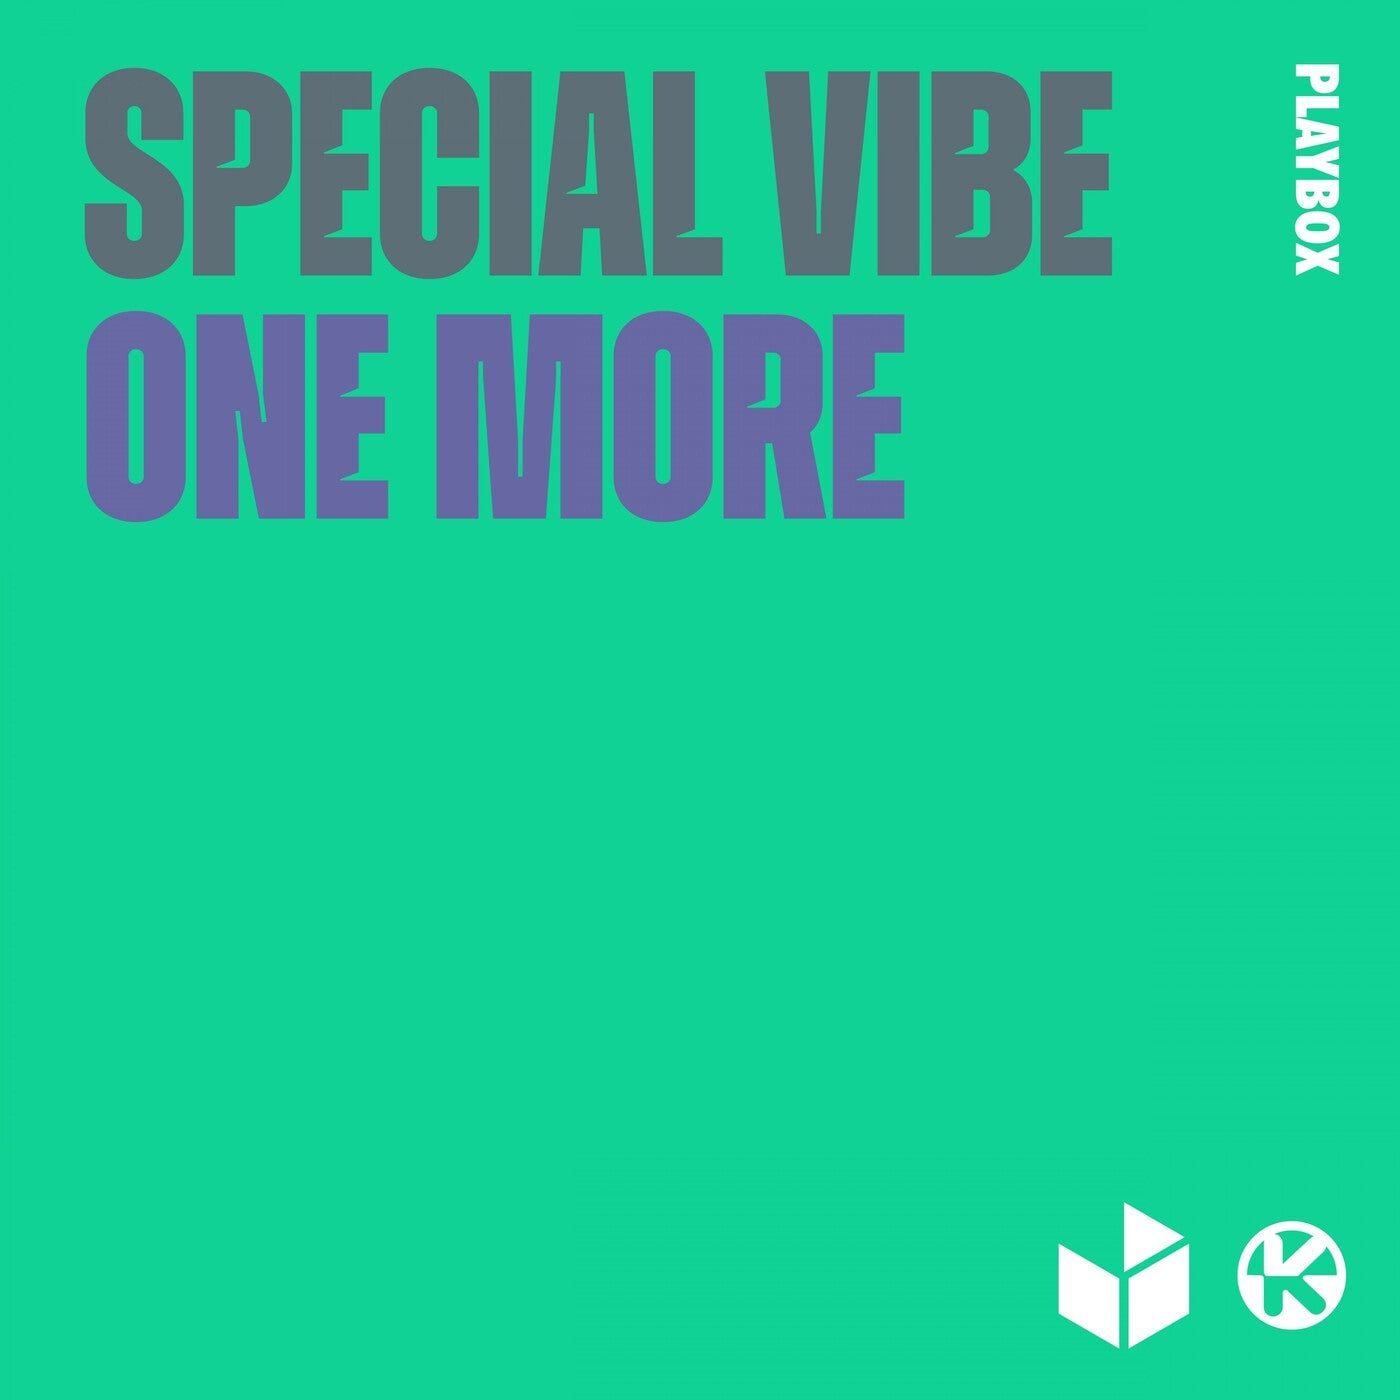 One More (Kyanu Extended Remix)